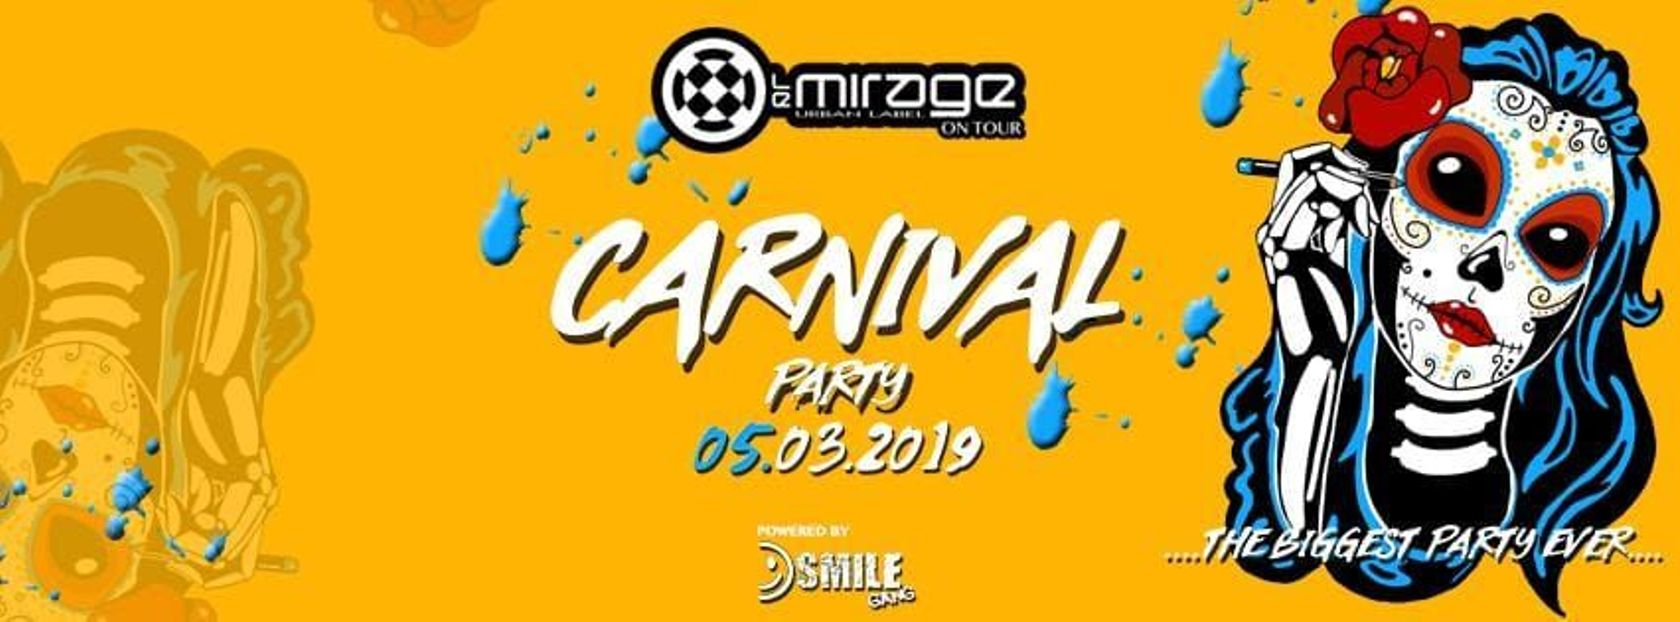 Carnival Party - Lemirage on TOUR